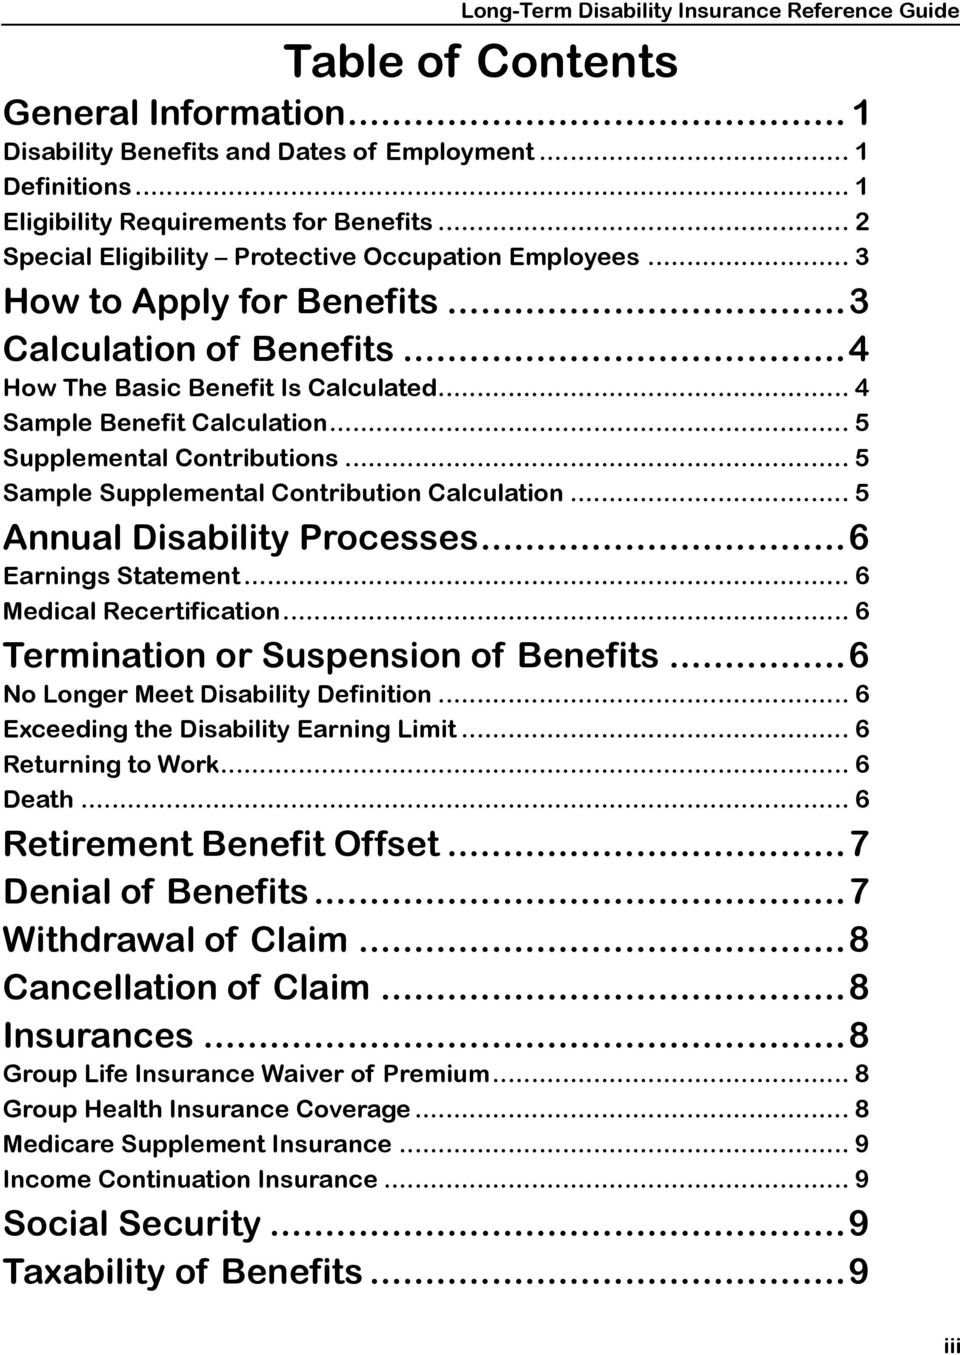 .. 5 Supplemental Contributions... 5 Sample Supplemental Contribution Calculation... 5 Annual Disability Processes...6 Earnings Statement... 6 Medical Recertification.